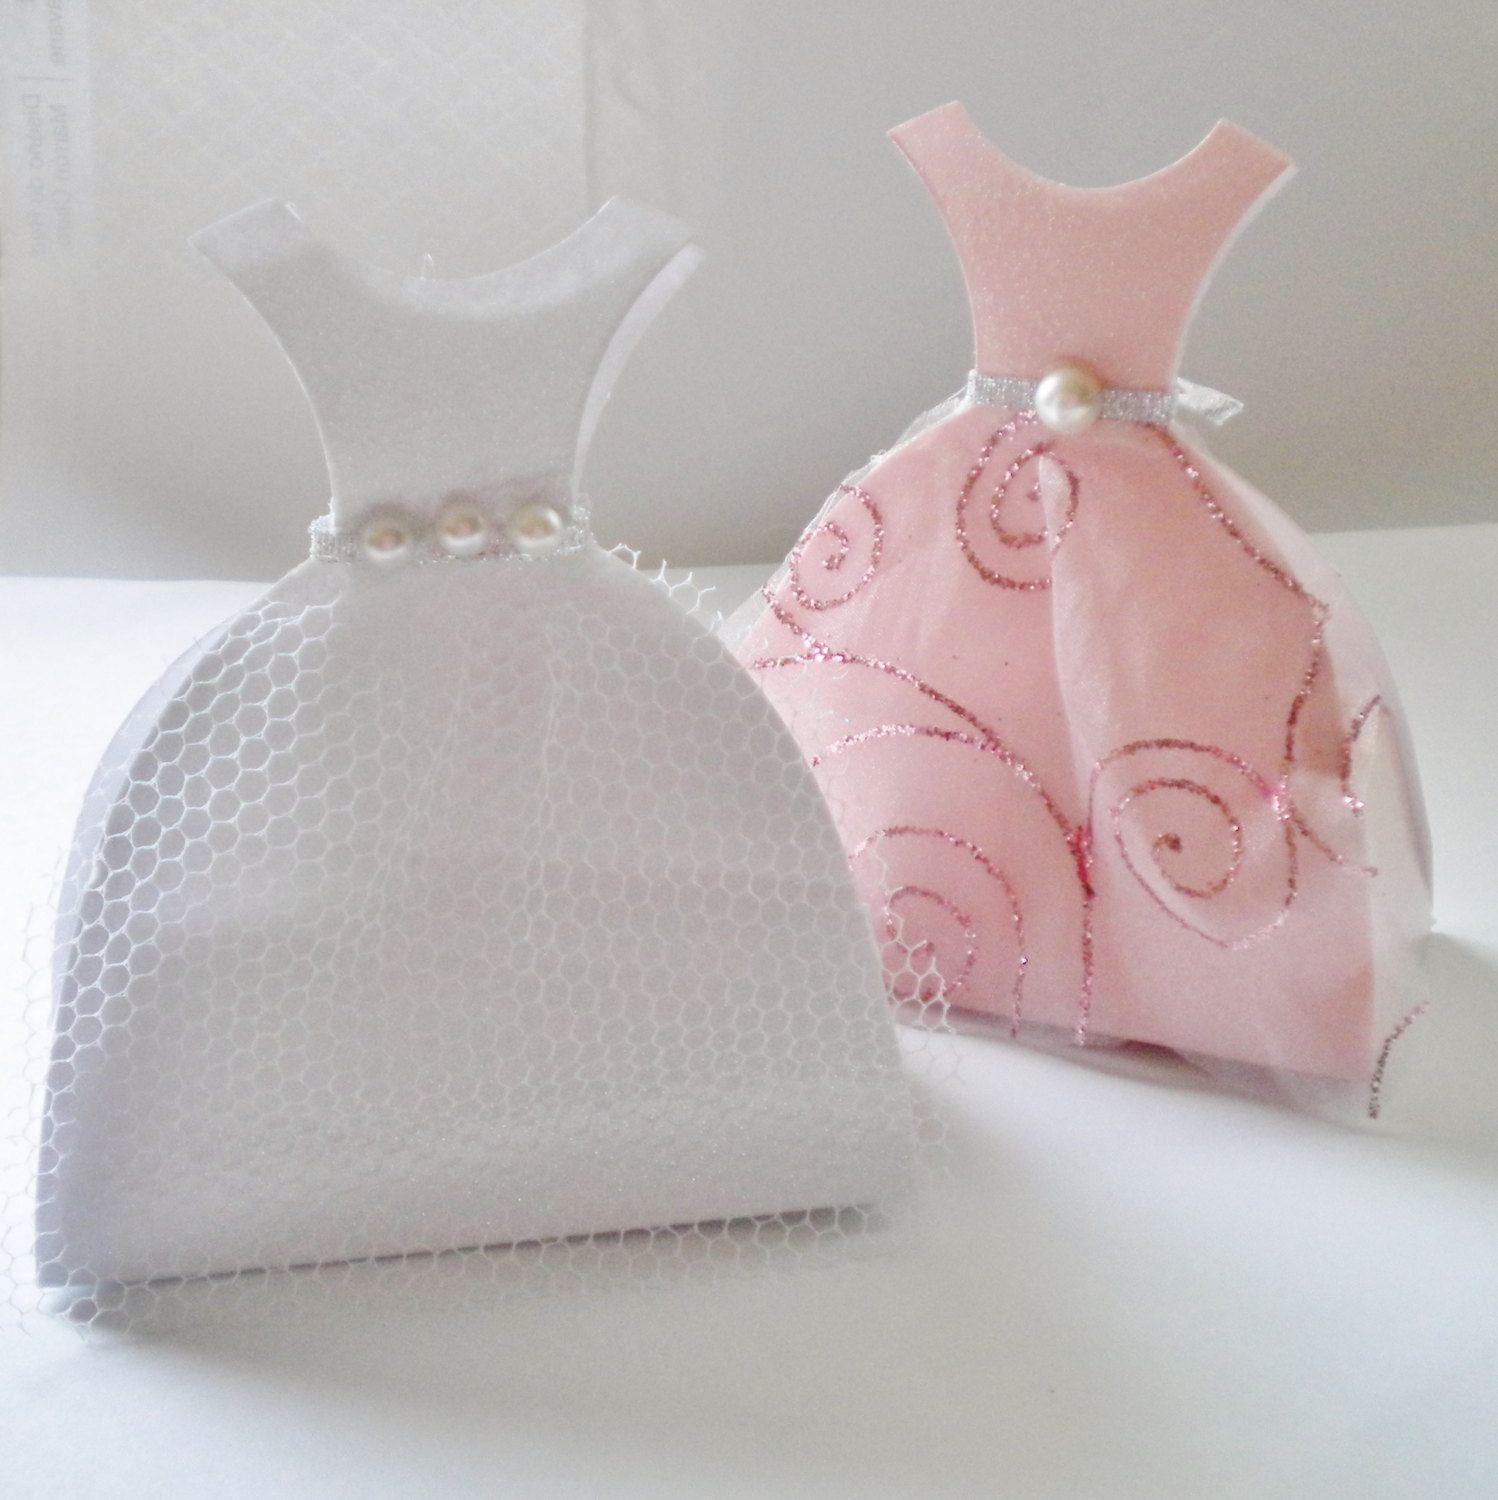 Wedding Dress Favor Boxes Set Of 4 By Nicegifts On Etsy Modern